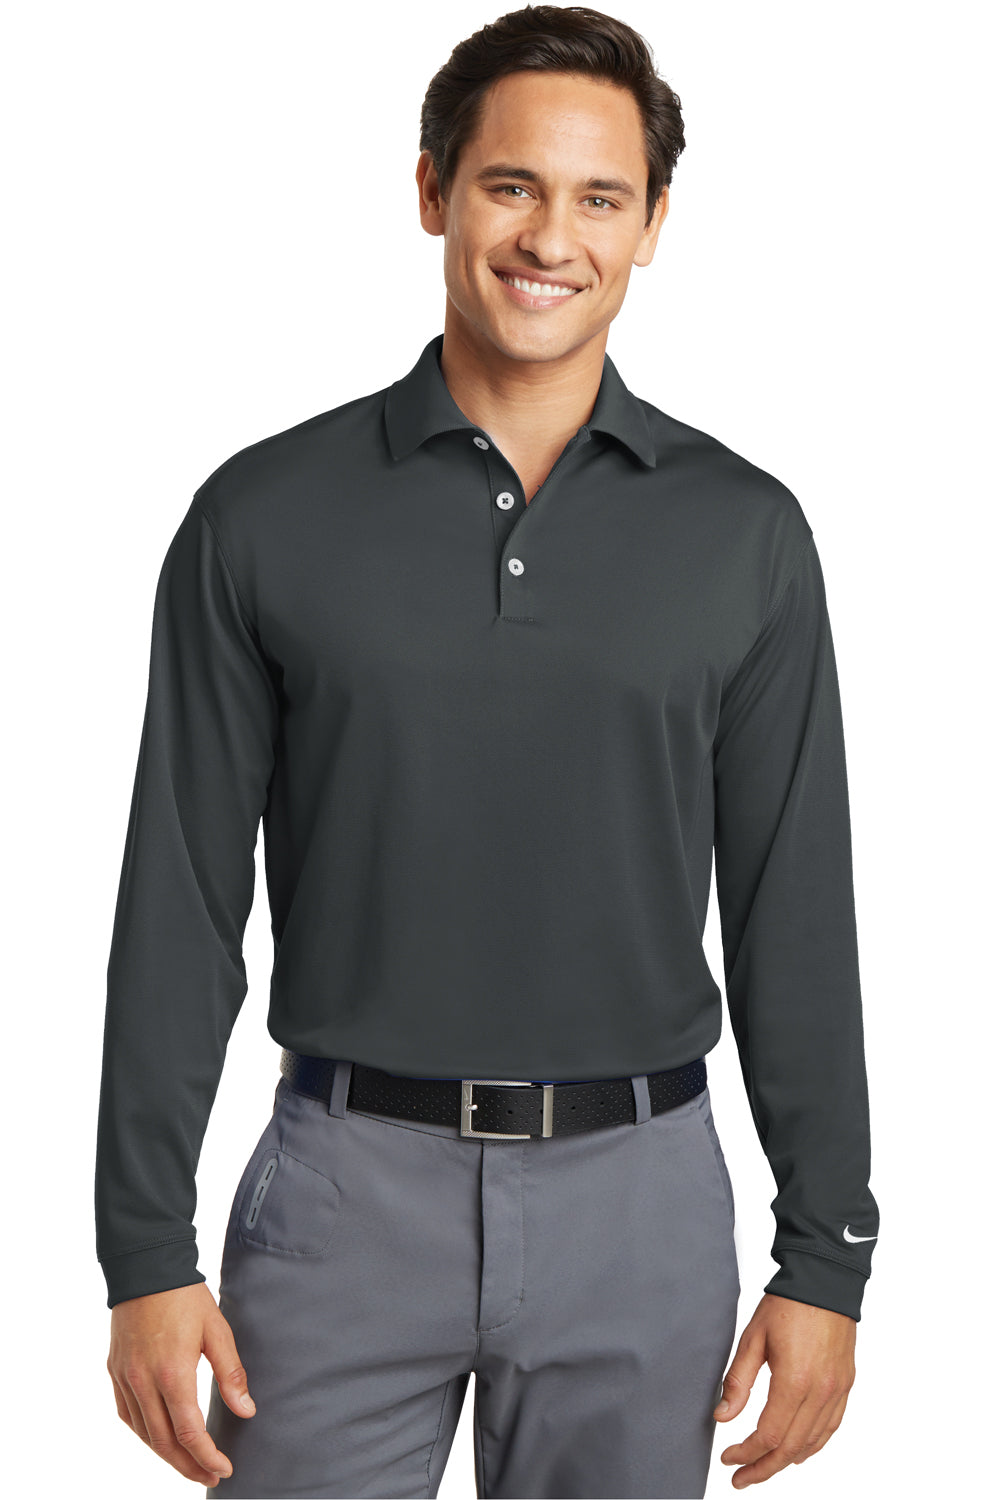 Nike Mens Stretch Tech Dri-Fit Moisture Wicking Long Sleeve Polo Shirt - Anthracite Grey